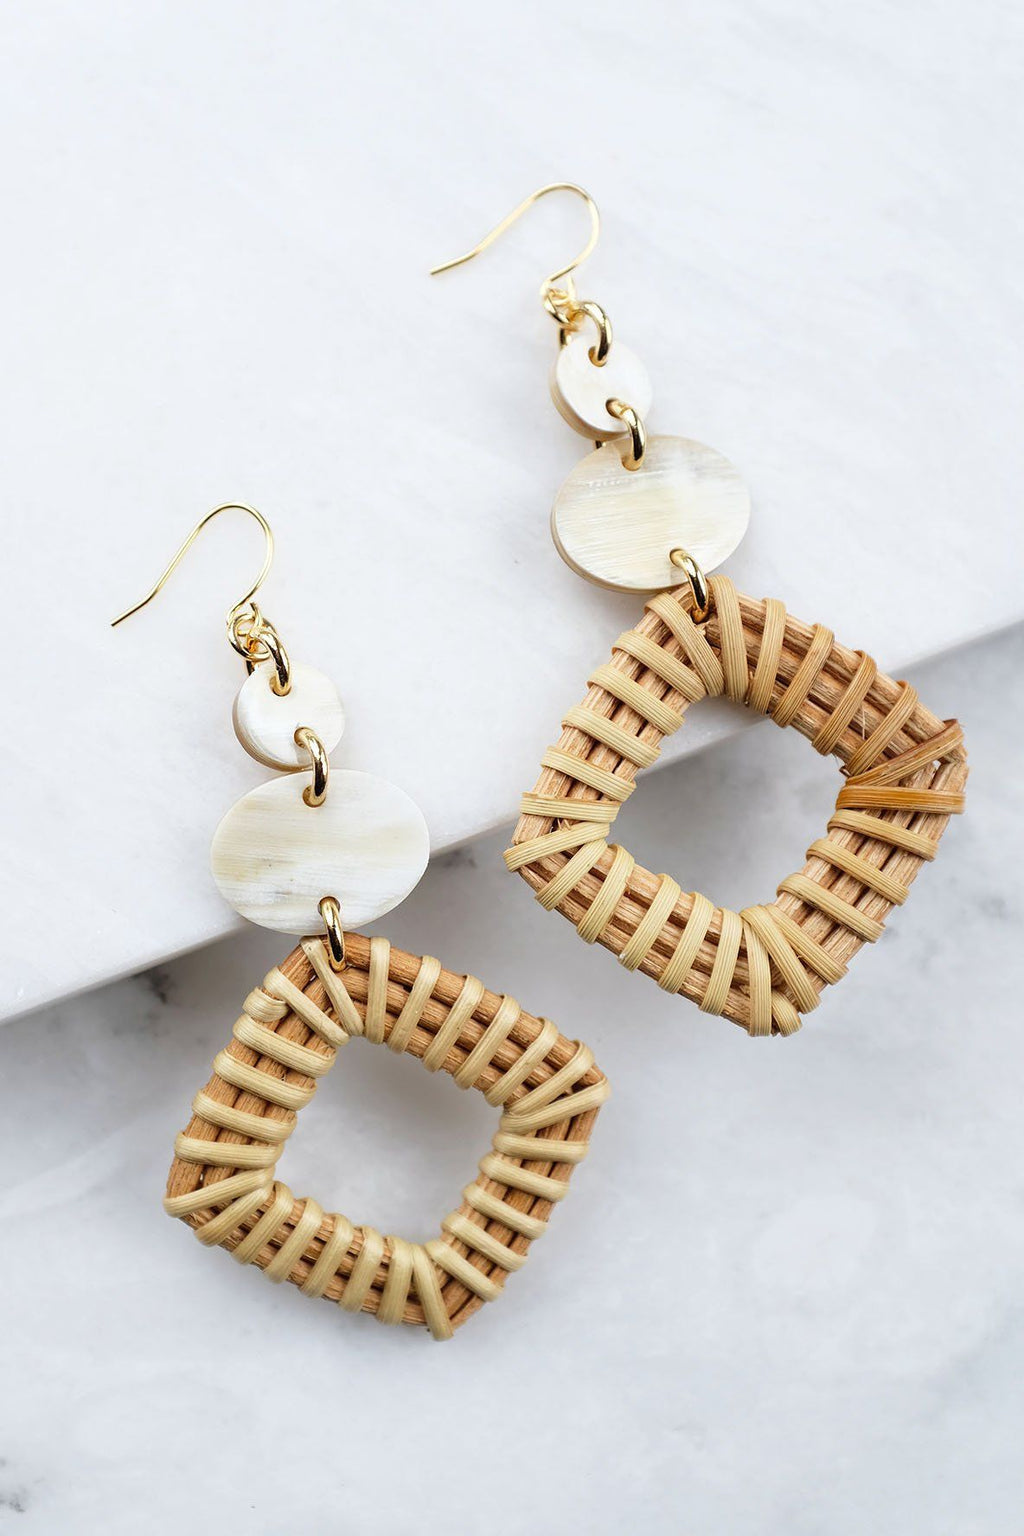 16K Gold-Plated Brass Buffalo Horn & Rattan/Wicker Statement Earrings - Monsoon Ridge